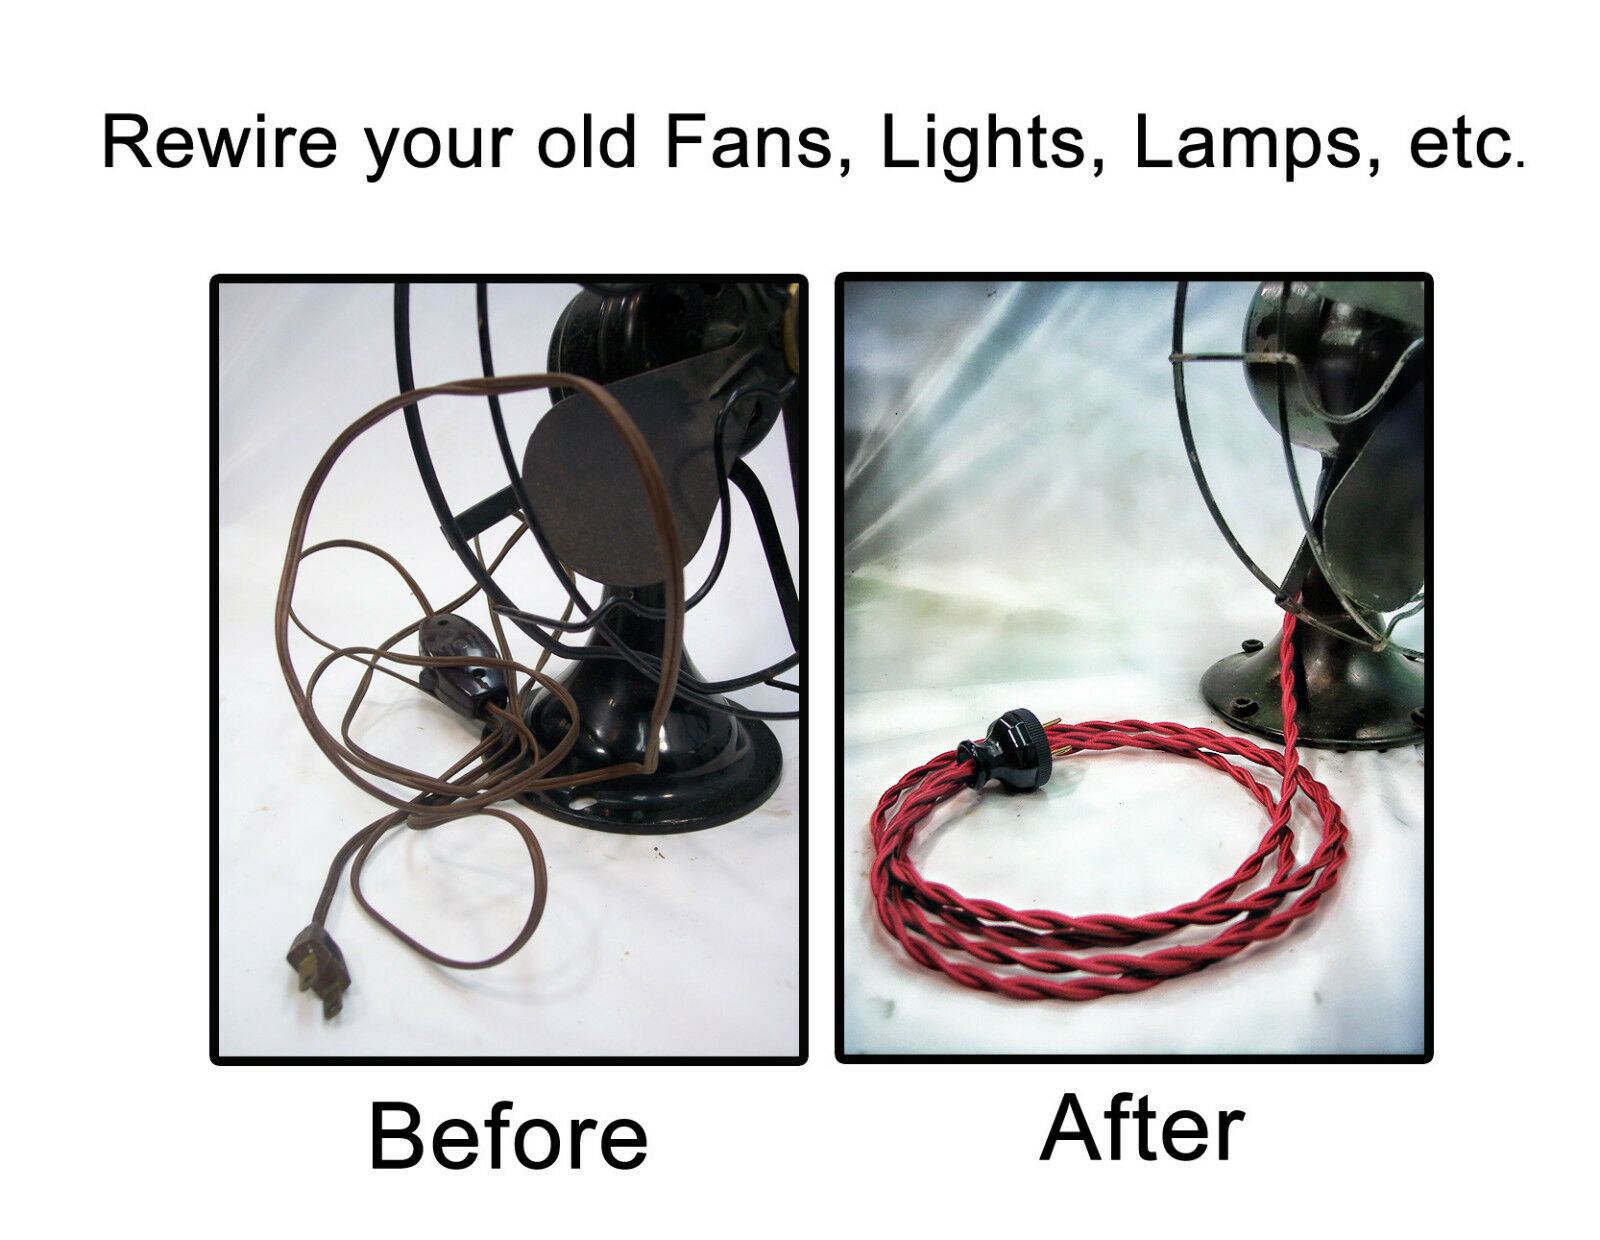 Antique Bronze - Cloth Covered Rewire Lamp Cord - Wire & Plug ... on welding a lamp, rewiring lamp parts, rewire a lamp, design a lamp, rewiring lamp fixture, soldering a lamp, paint a lamp, wire a lamp, repair a lamp, rebuilding a lamp, rewiring radio, diy pipe lamp, polishing a lamp, lights a lamp, repainting a lamp, plastering a lamp,